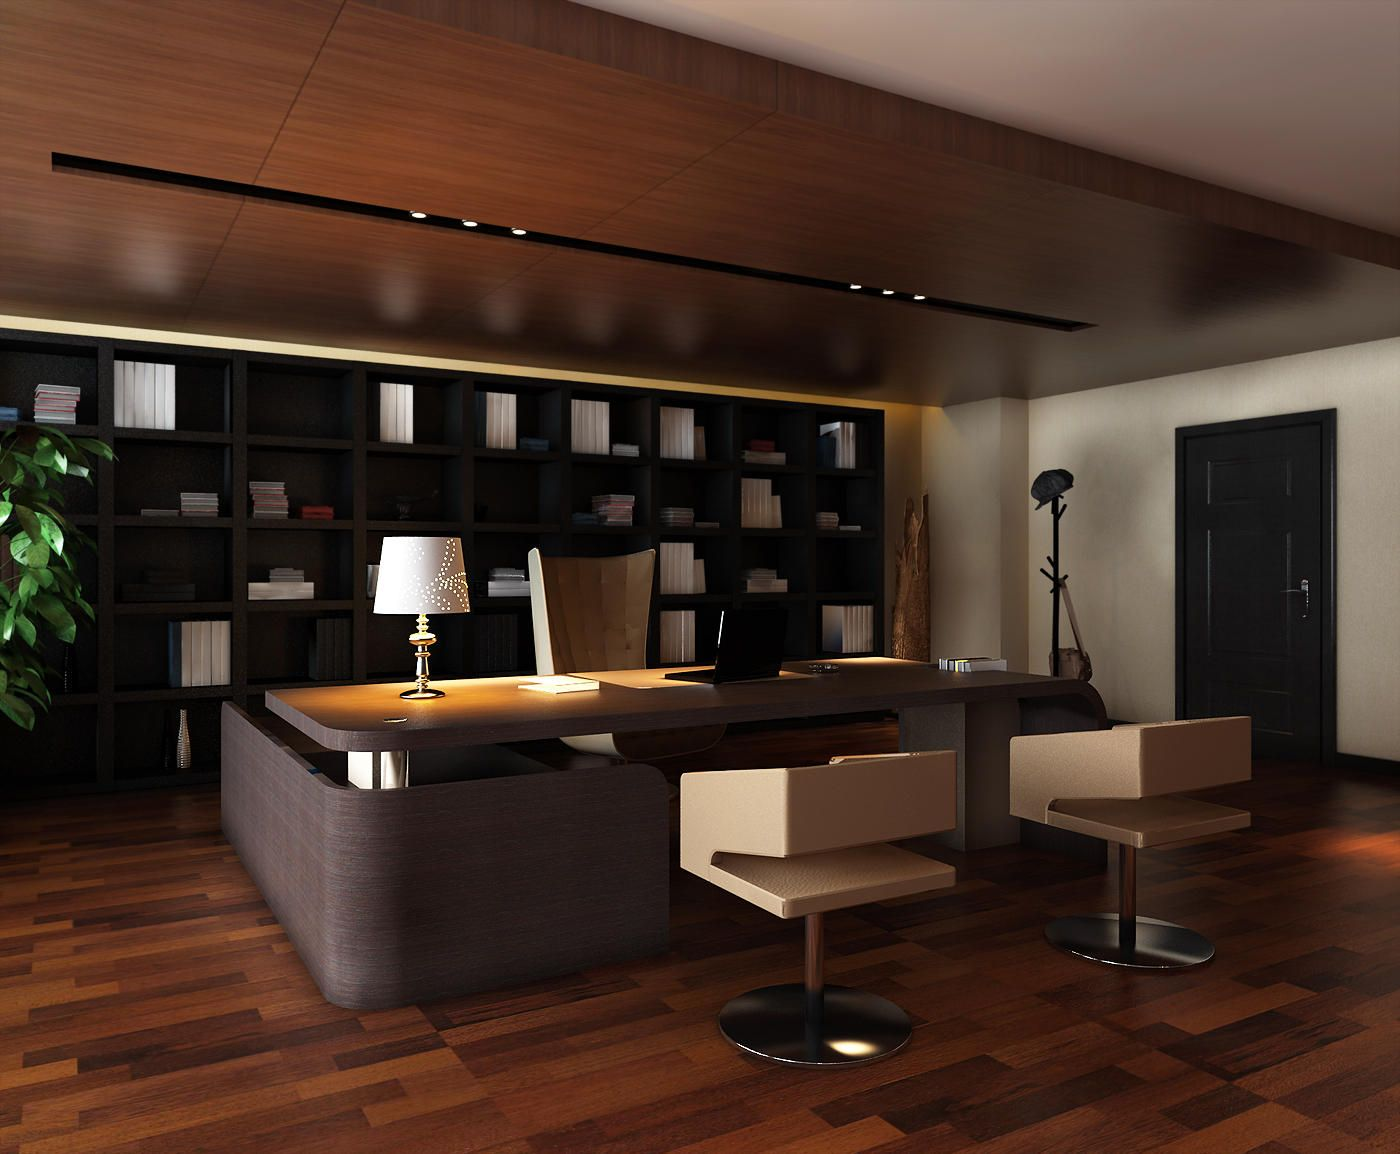 Alluring limitless executive office executive office for It office design ideas